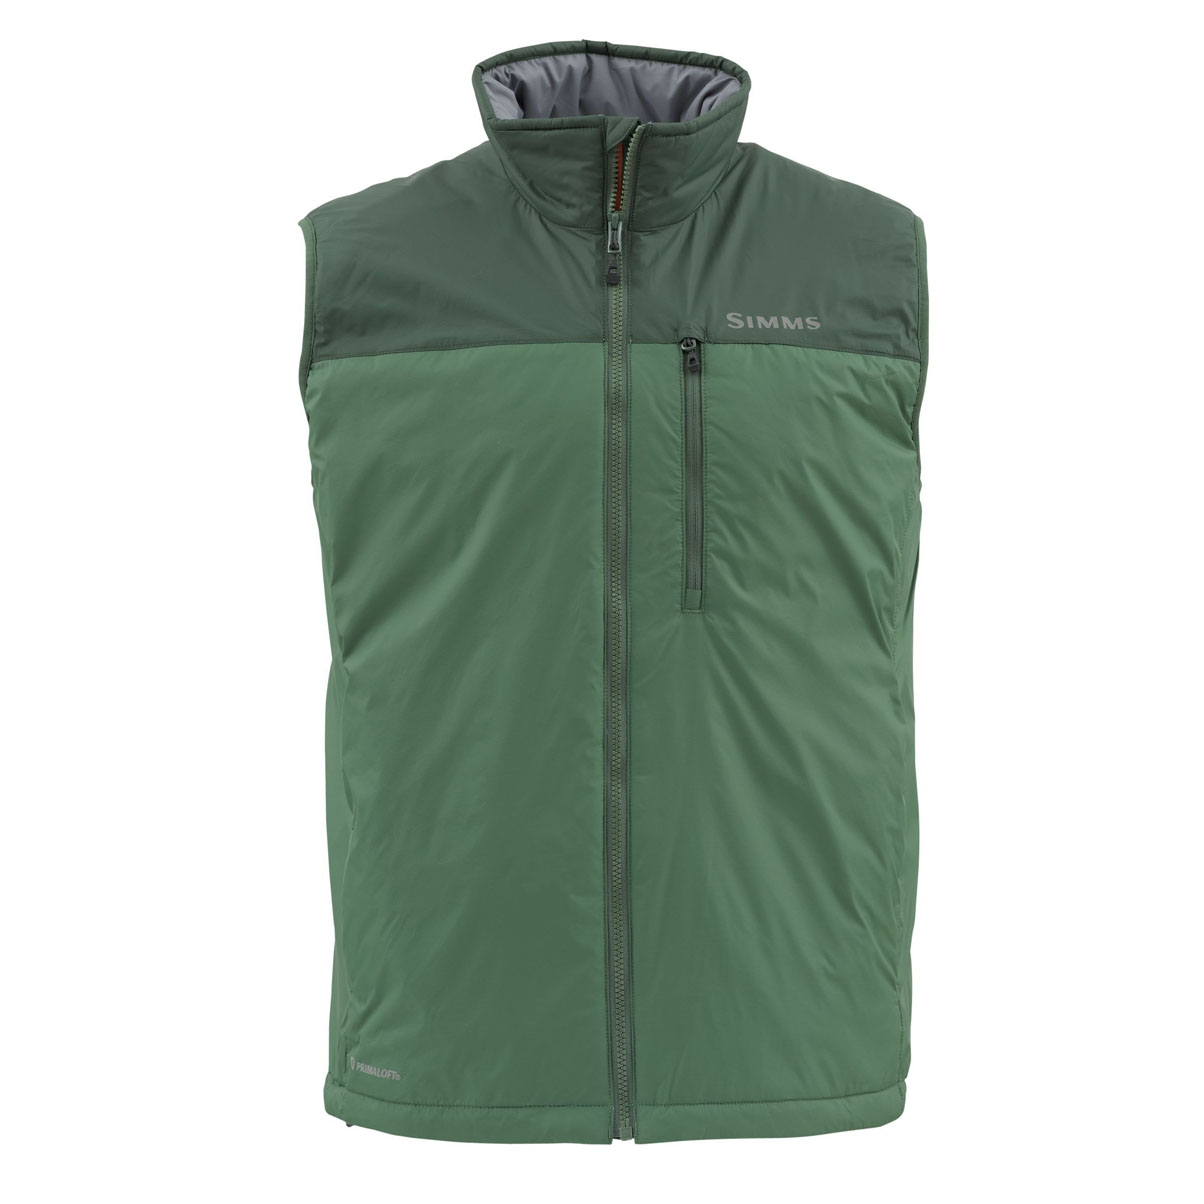 MIDSTREAM INSULATED VEST